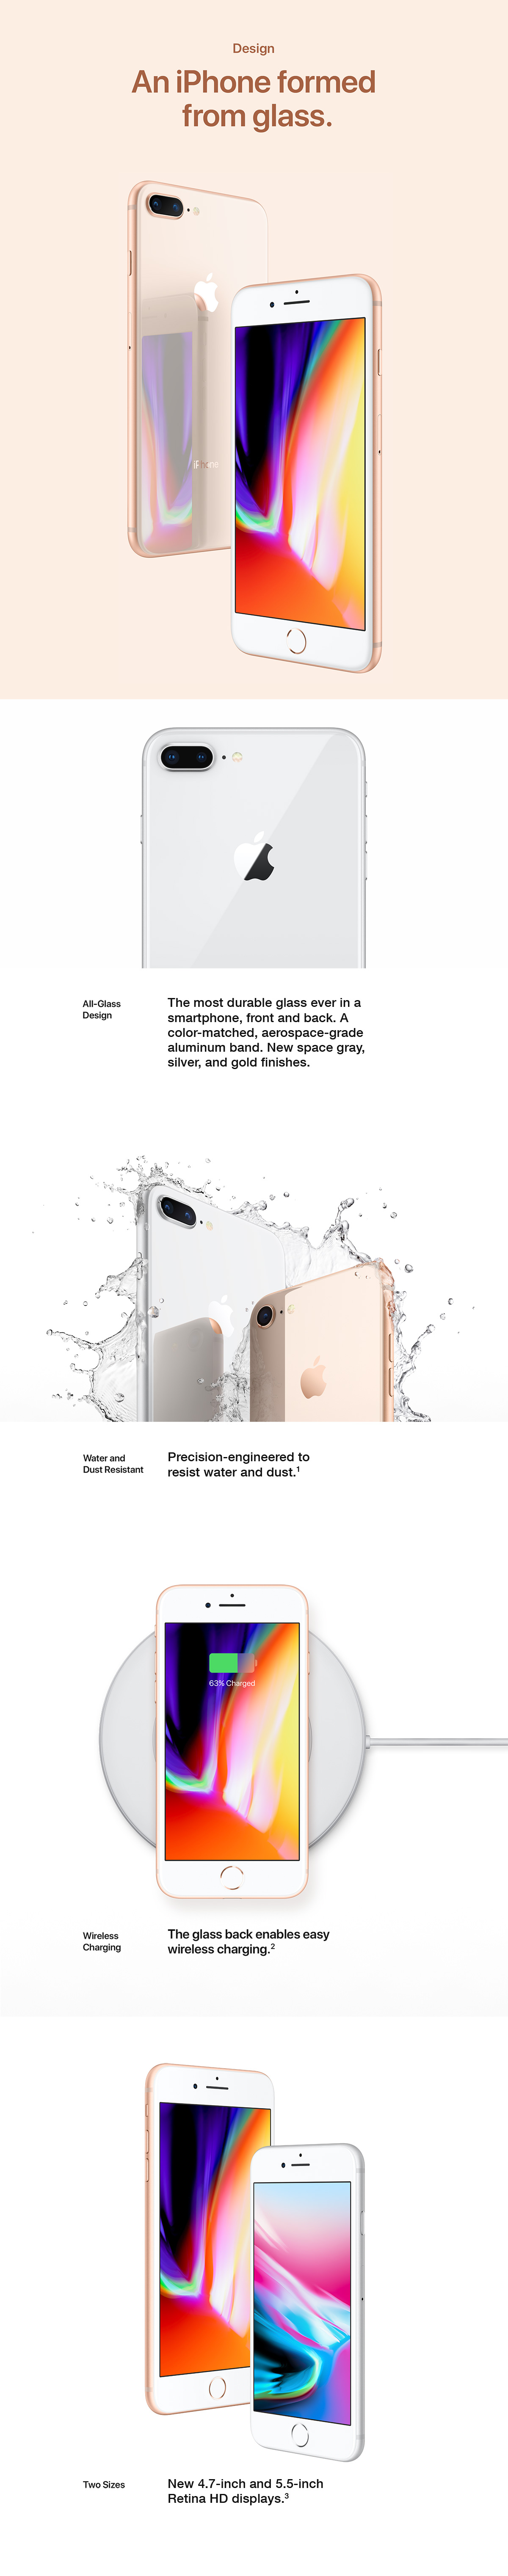 An iPhone formed from Glass